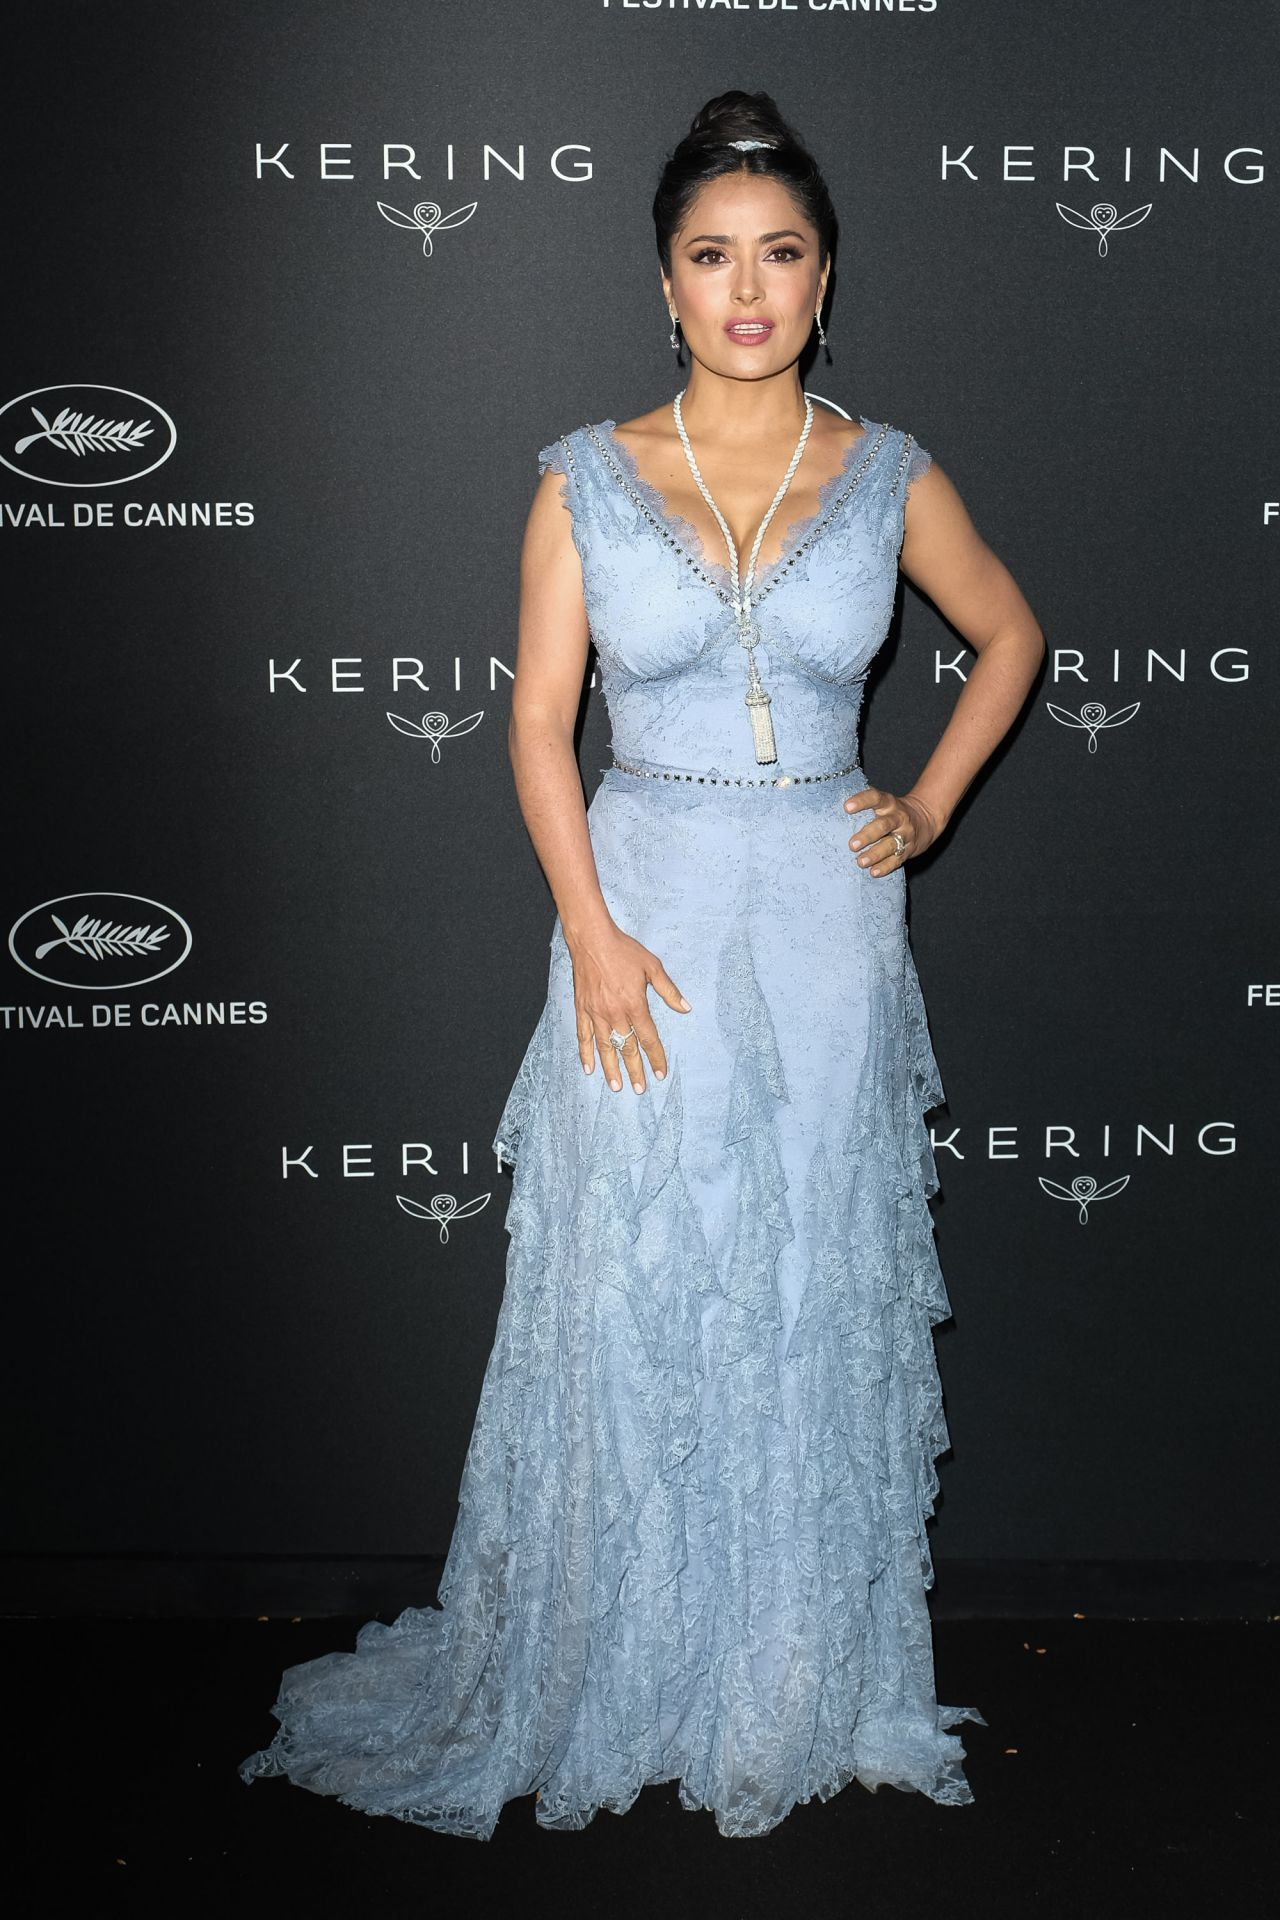 http://celebmafia.com/wp-content/uploads/2018/05/salma-hayek-kering-women-in-motion-awards-dinner-at-cannes-film-festival-2018-1.jpg